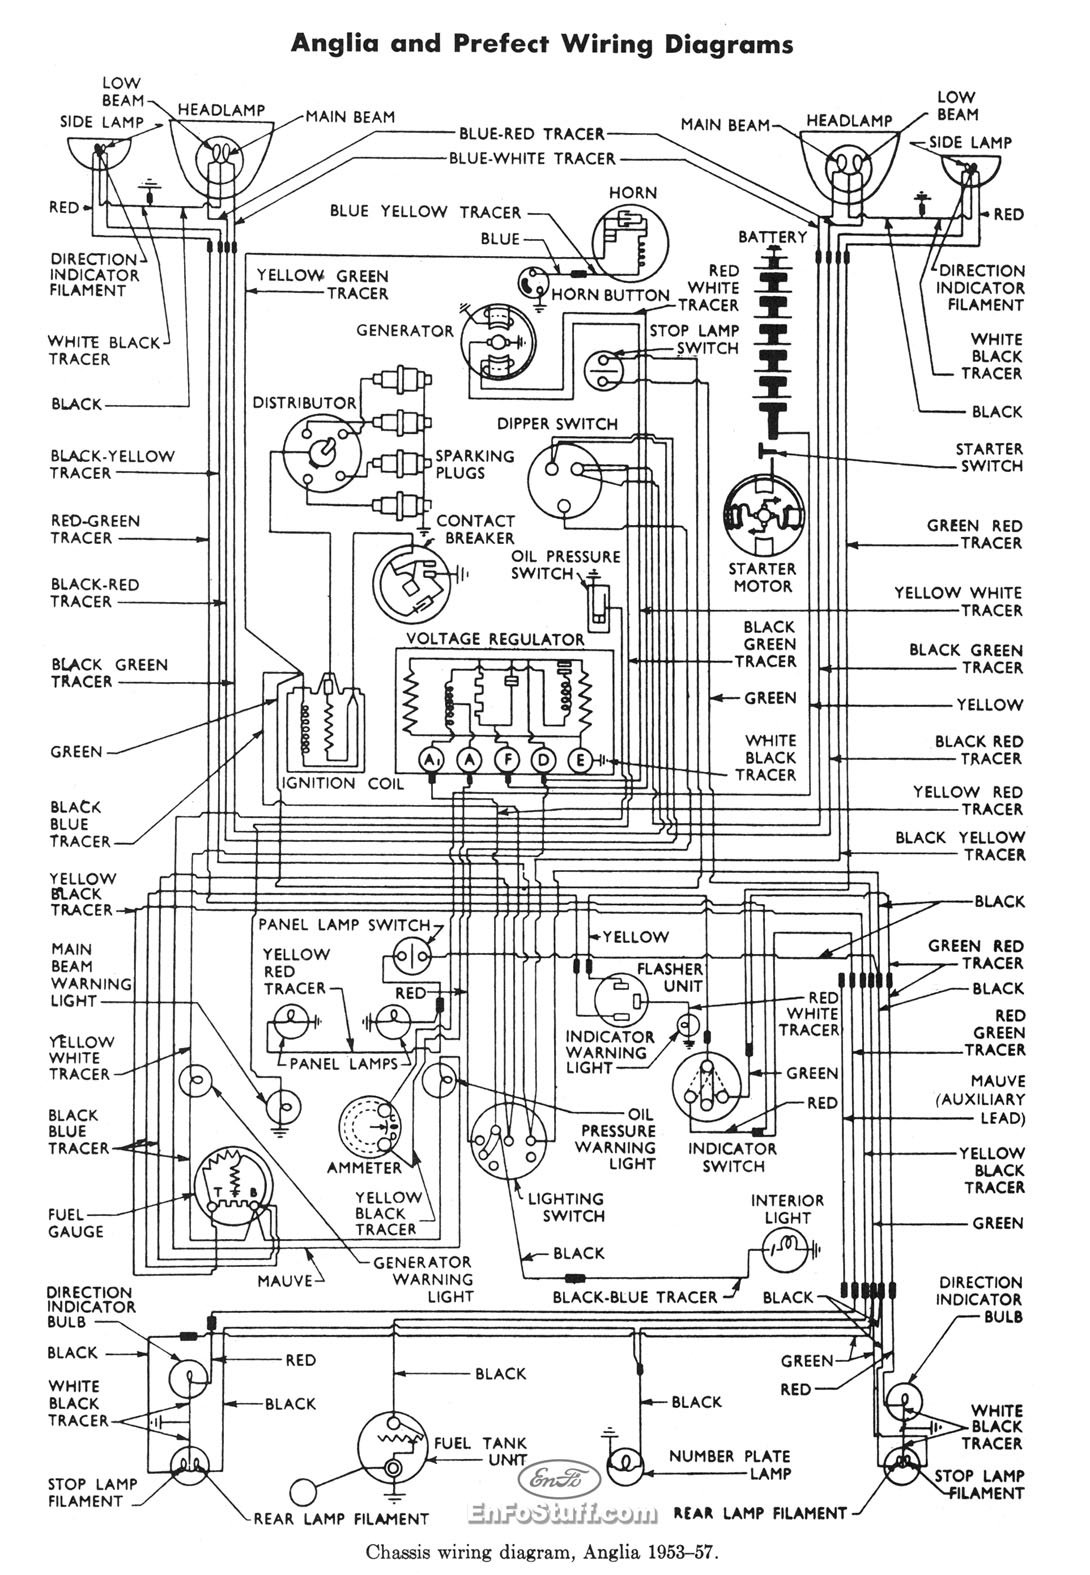 Ford 2600 Diesel Tractor Wiring Diagram on wiring harness hot rod